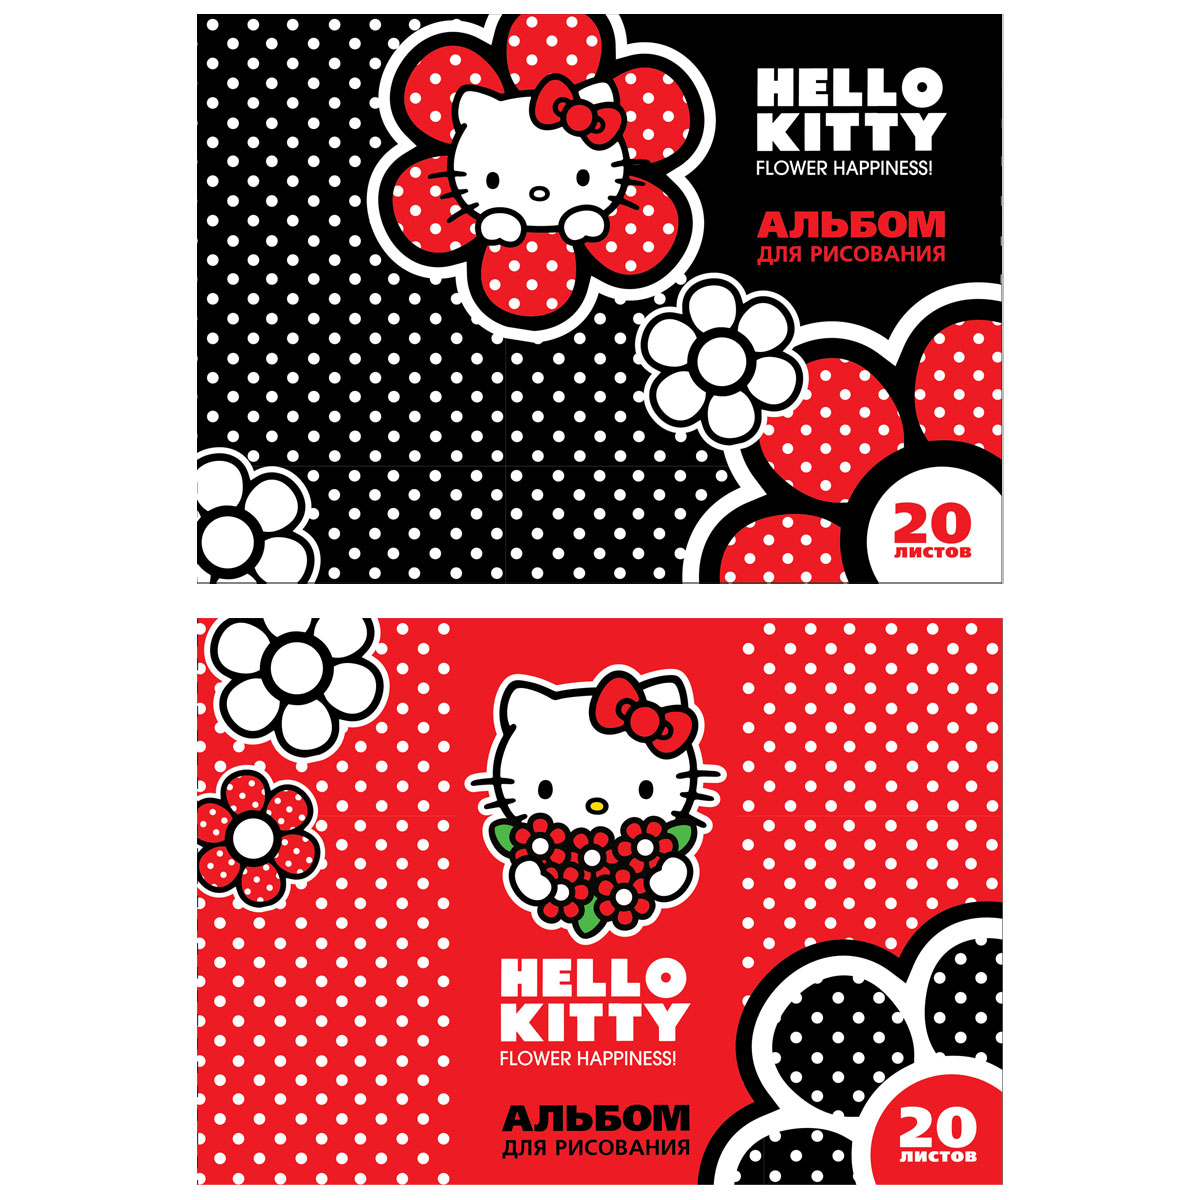 ������ ��� ��������� ACTION! HELLO KITTY 20 ������ �� ������� 2 �������